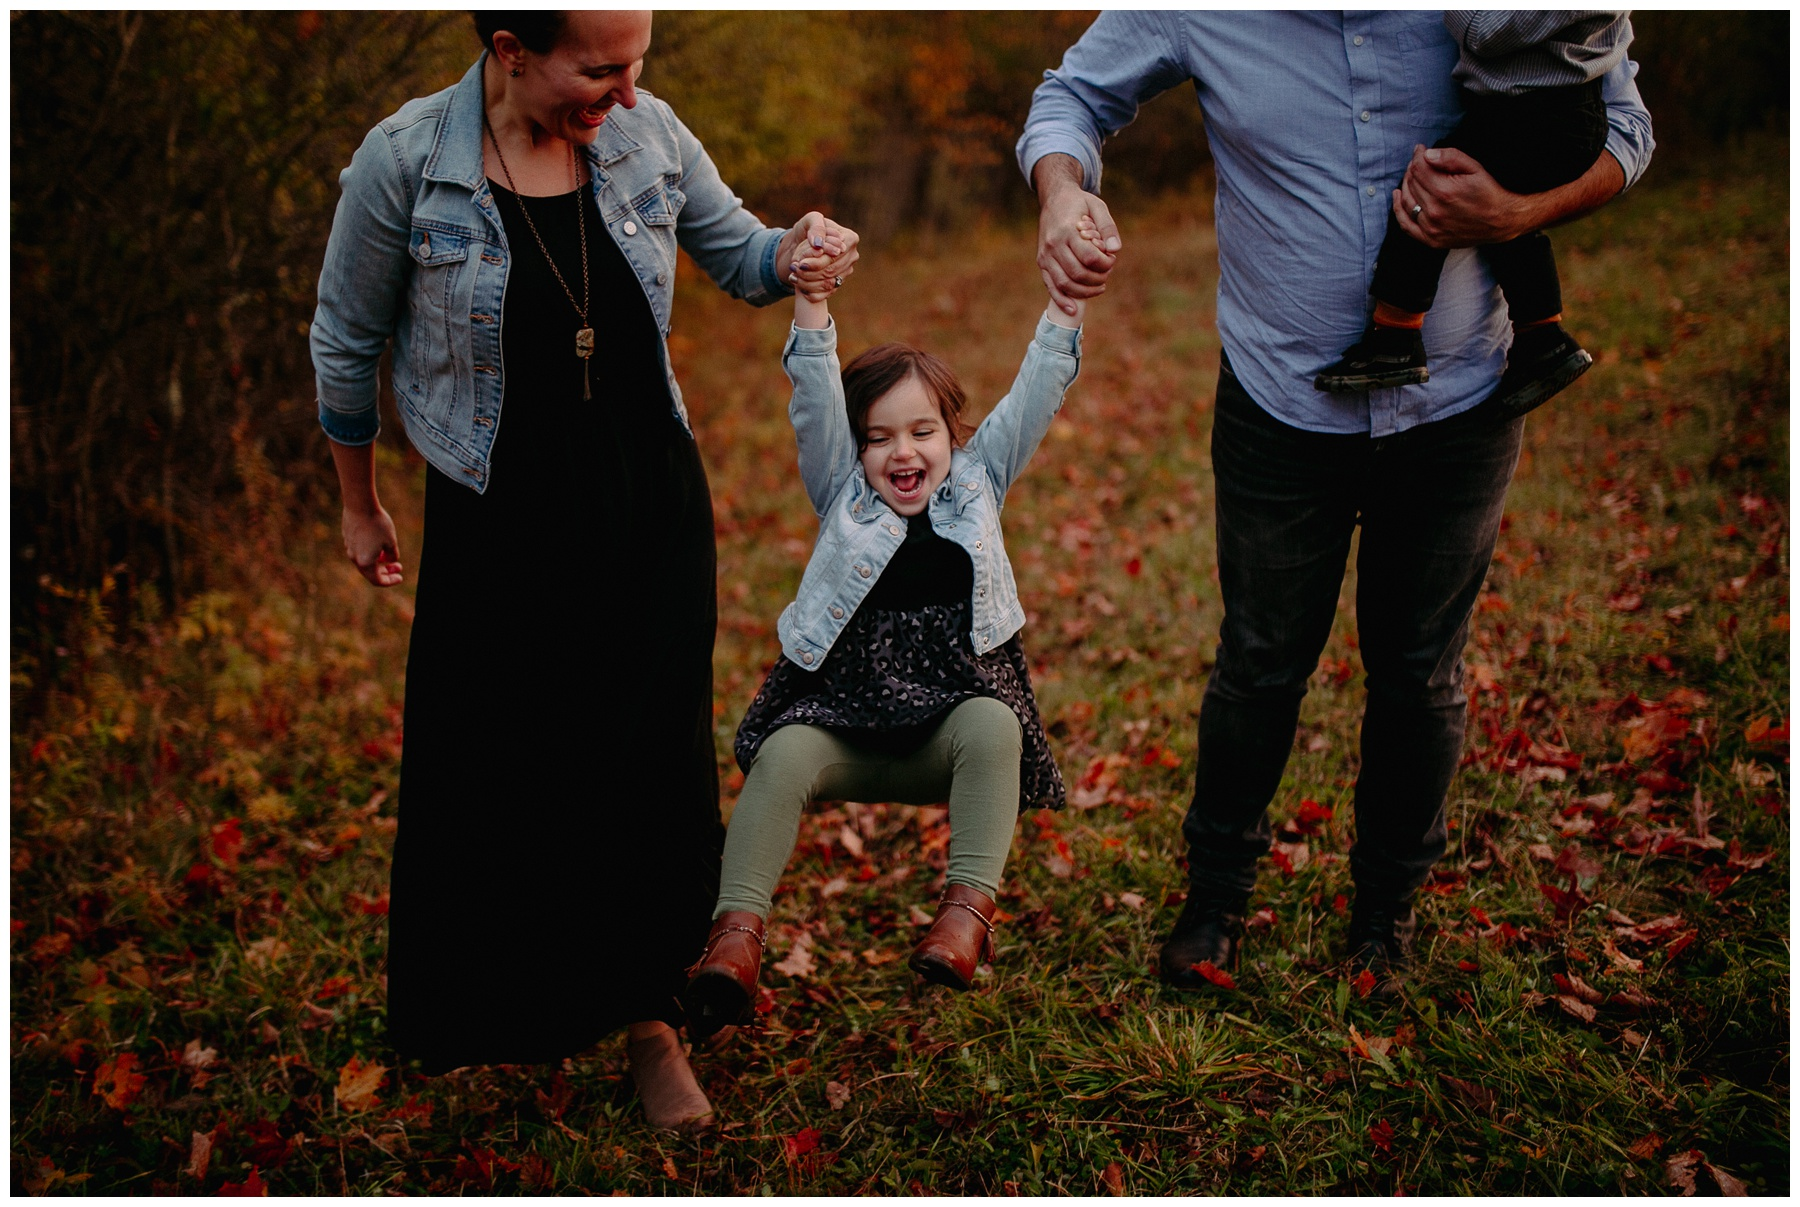 kerry ford photography - fall autumn family session perth035.jpg